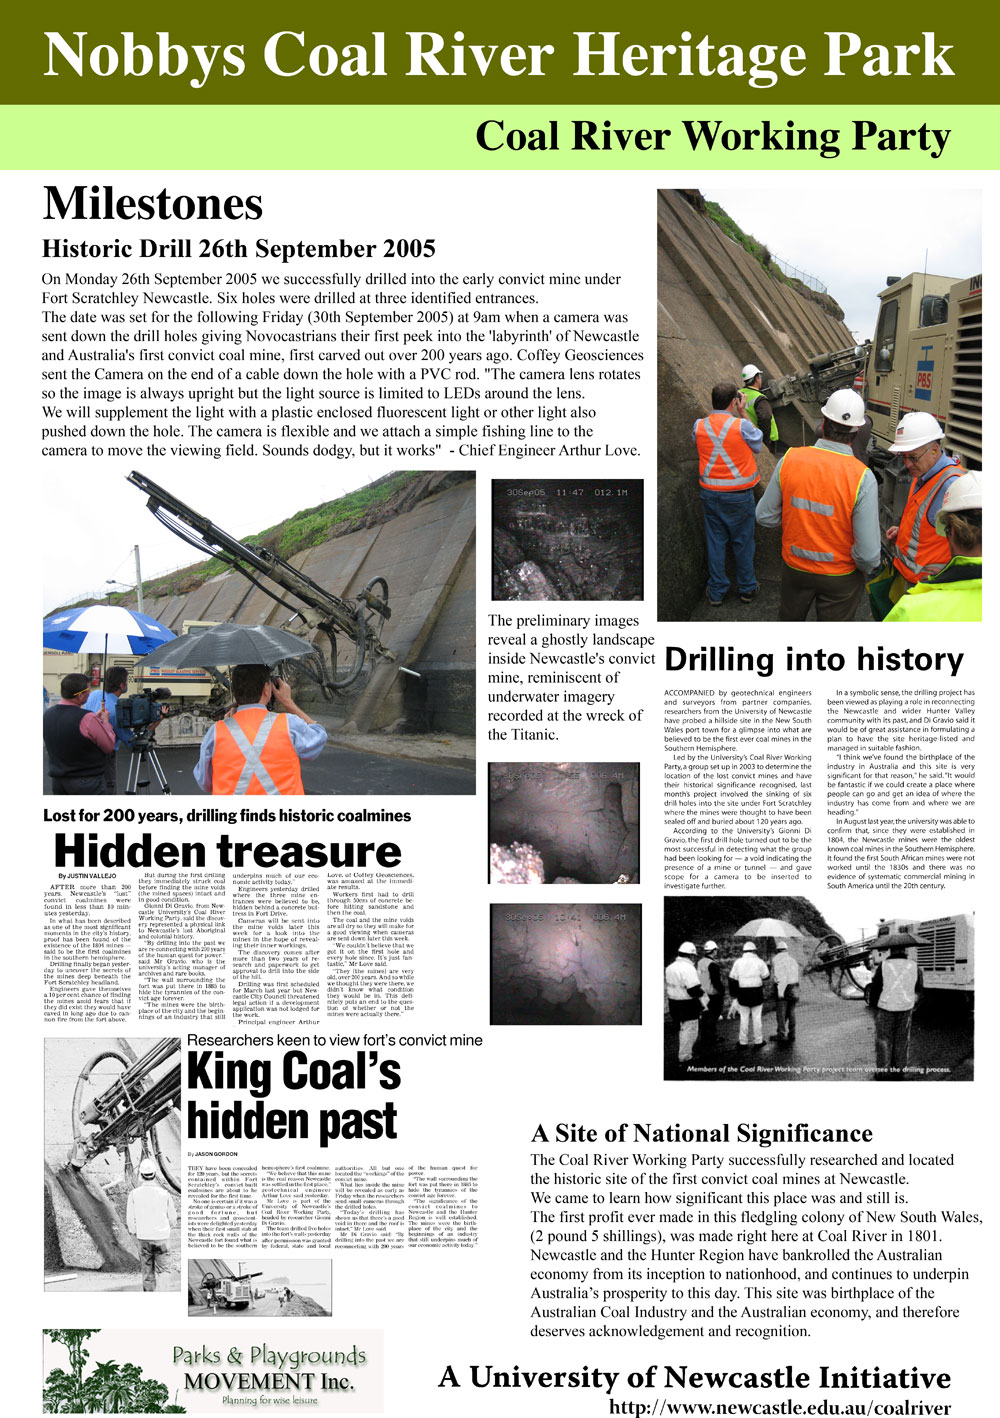 Coal River Working Party Poster No. 10 - Milestones - Historic Drill 26th September 2005